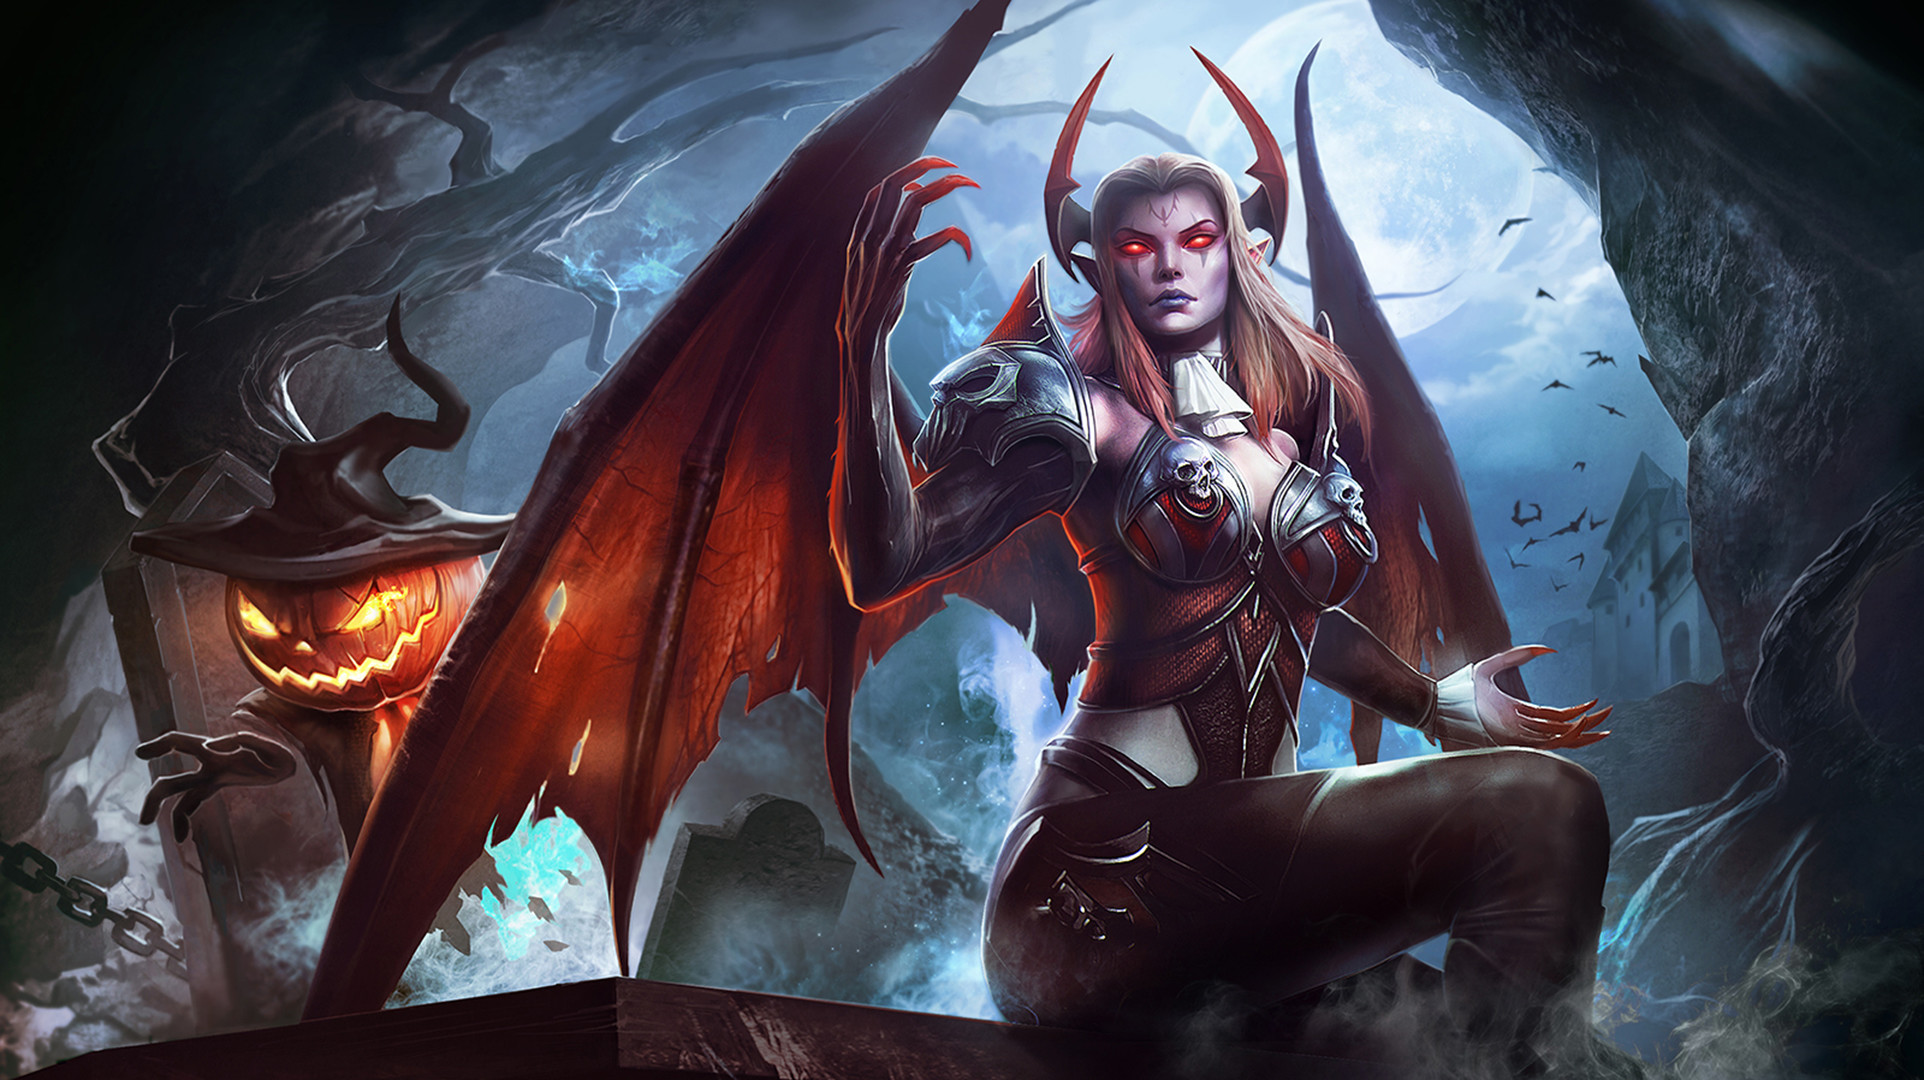 Hd Wallpapers For Nexus 5 Succubus Wallpaper Hd 59 Images